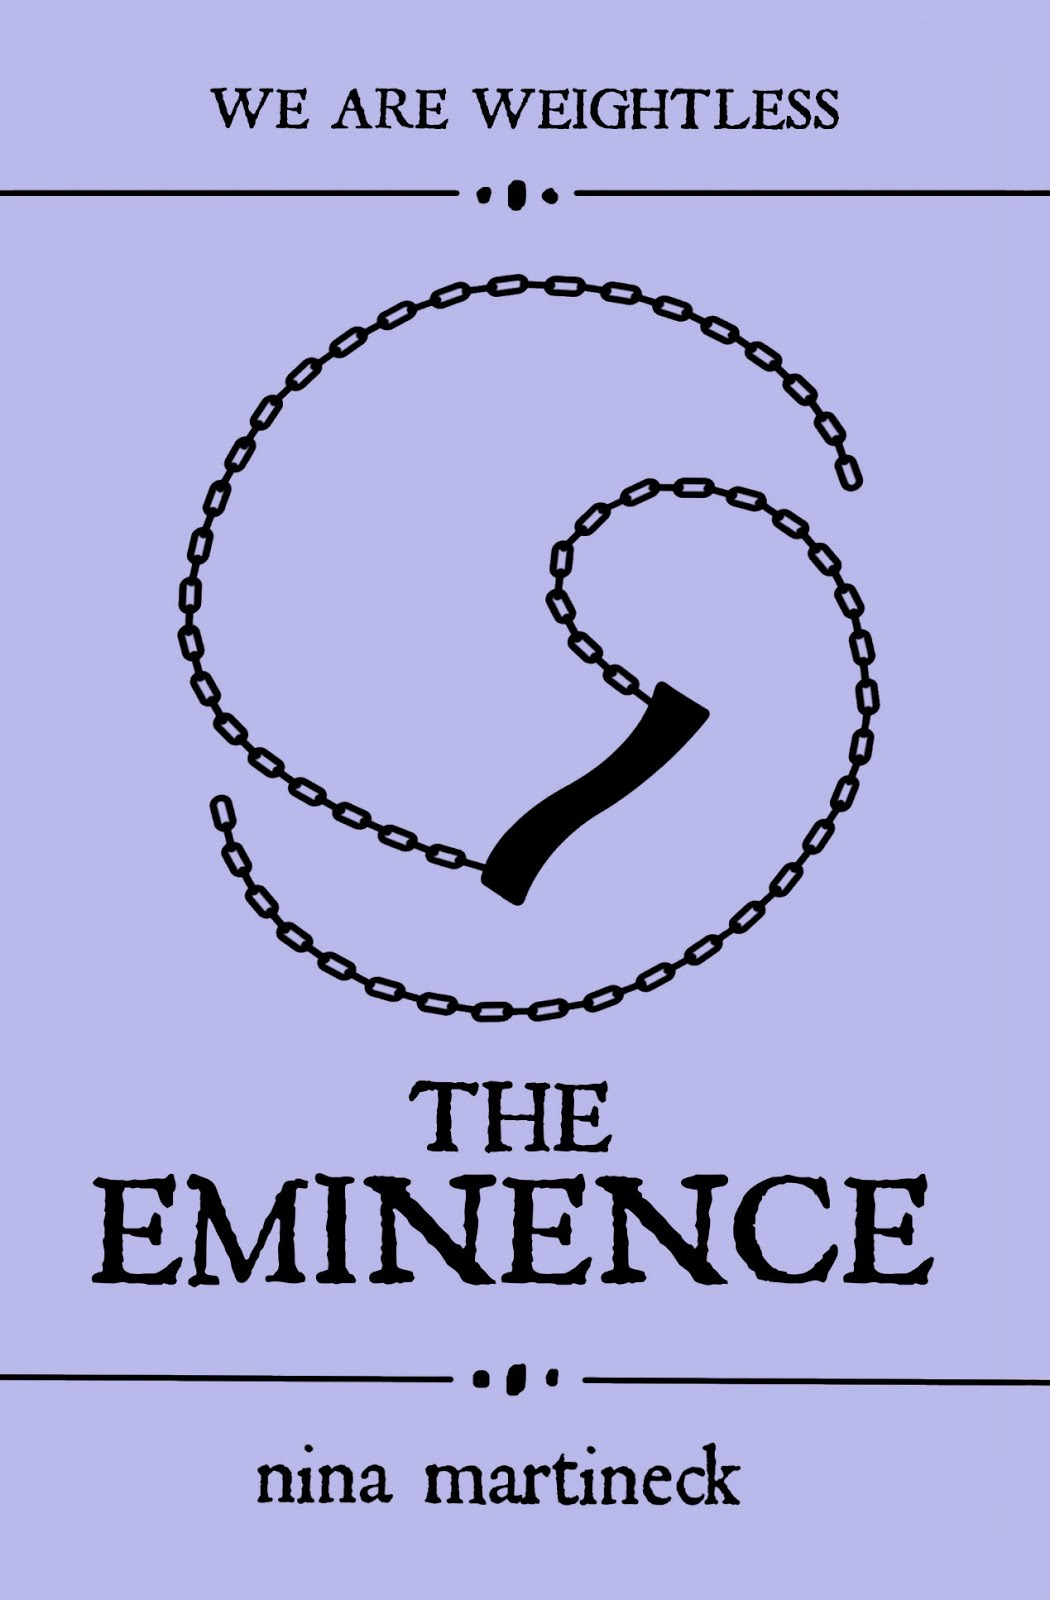 Get THE EMINENCE on Amazon: